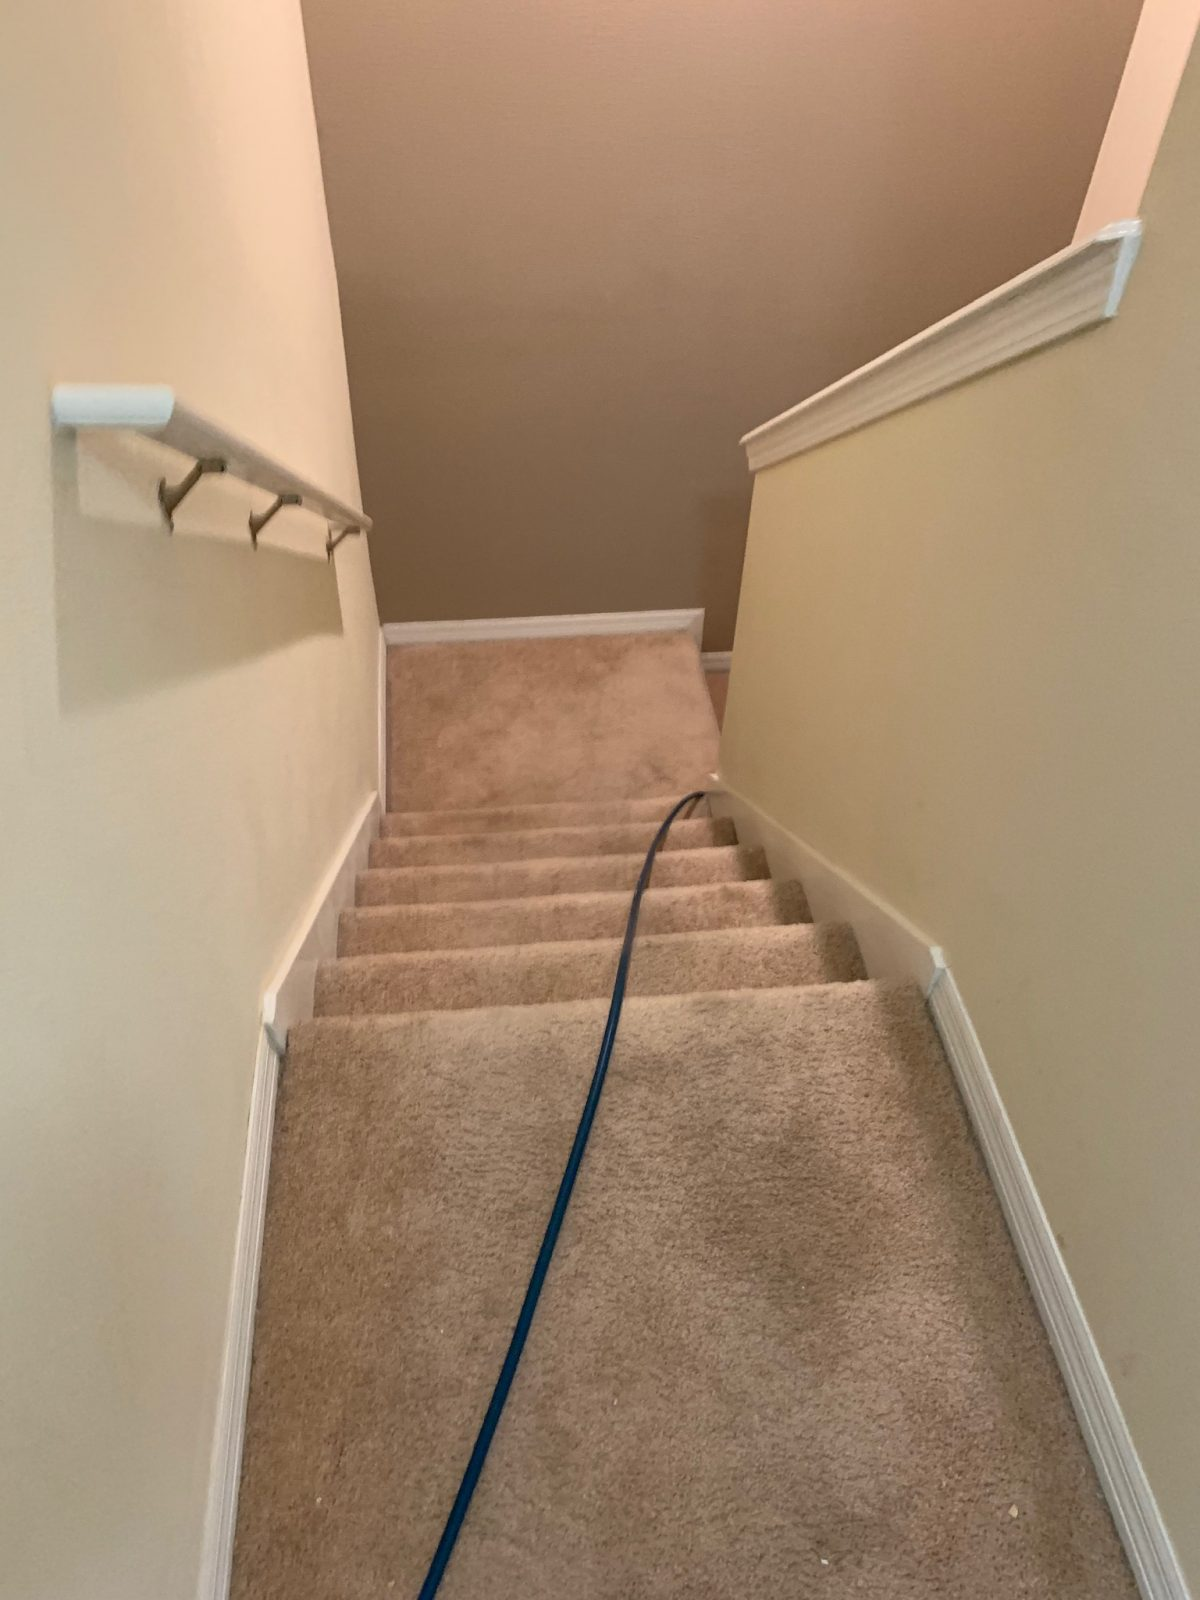 Professional Carpet Cleaning Odessa Florida by Howards Cleaning Service